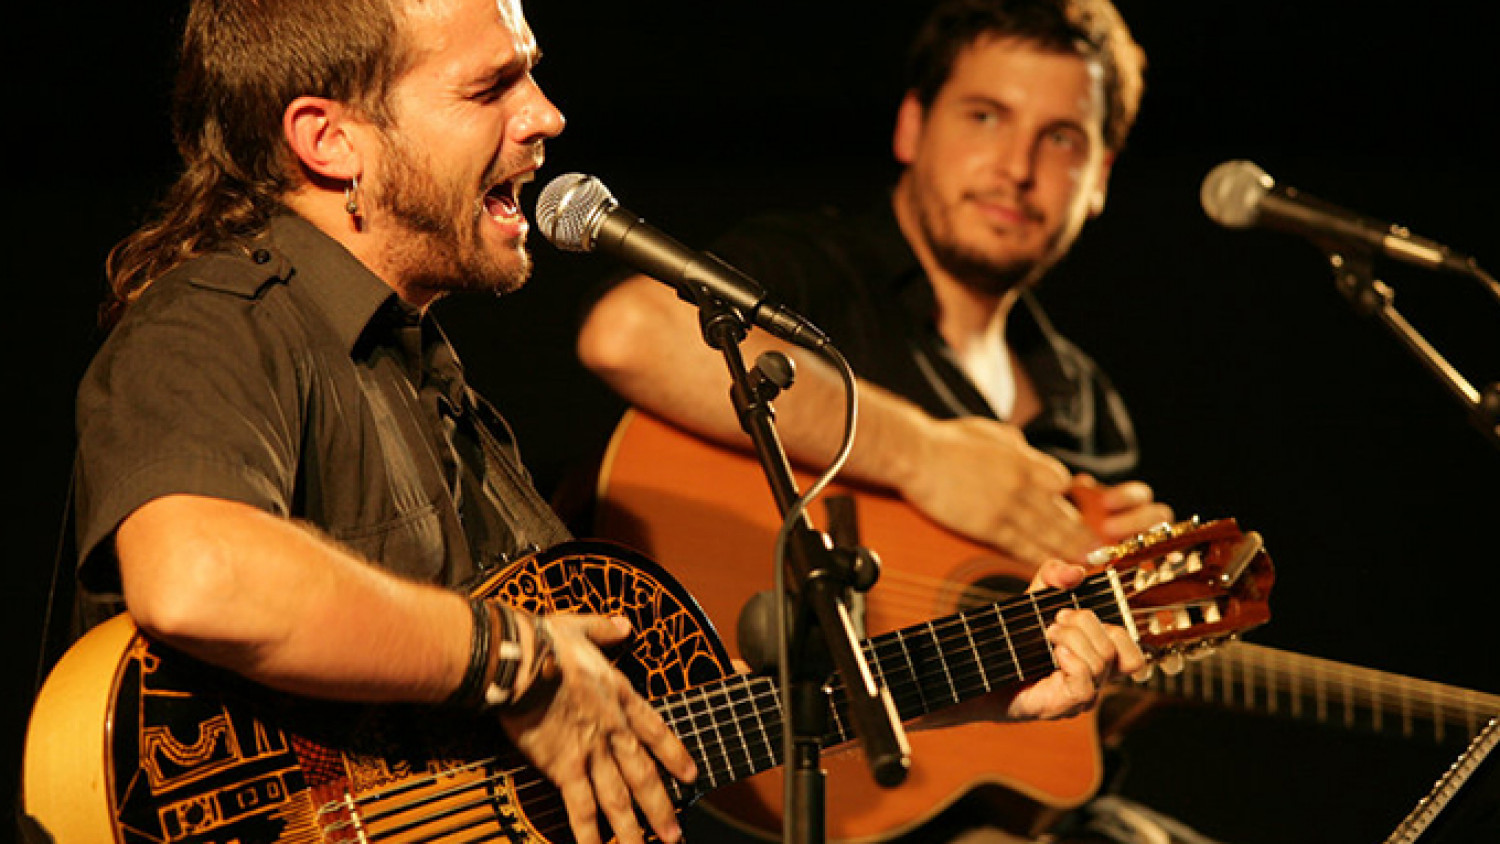 Musicians Cesk Freixas and Pau Alabajos performing on stage (image from Barcelona city council website)